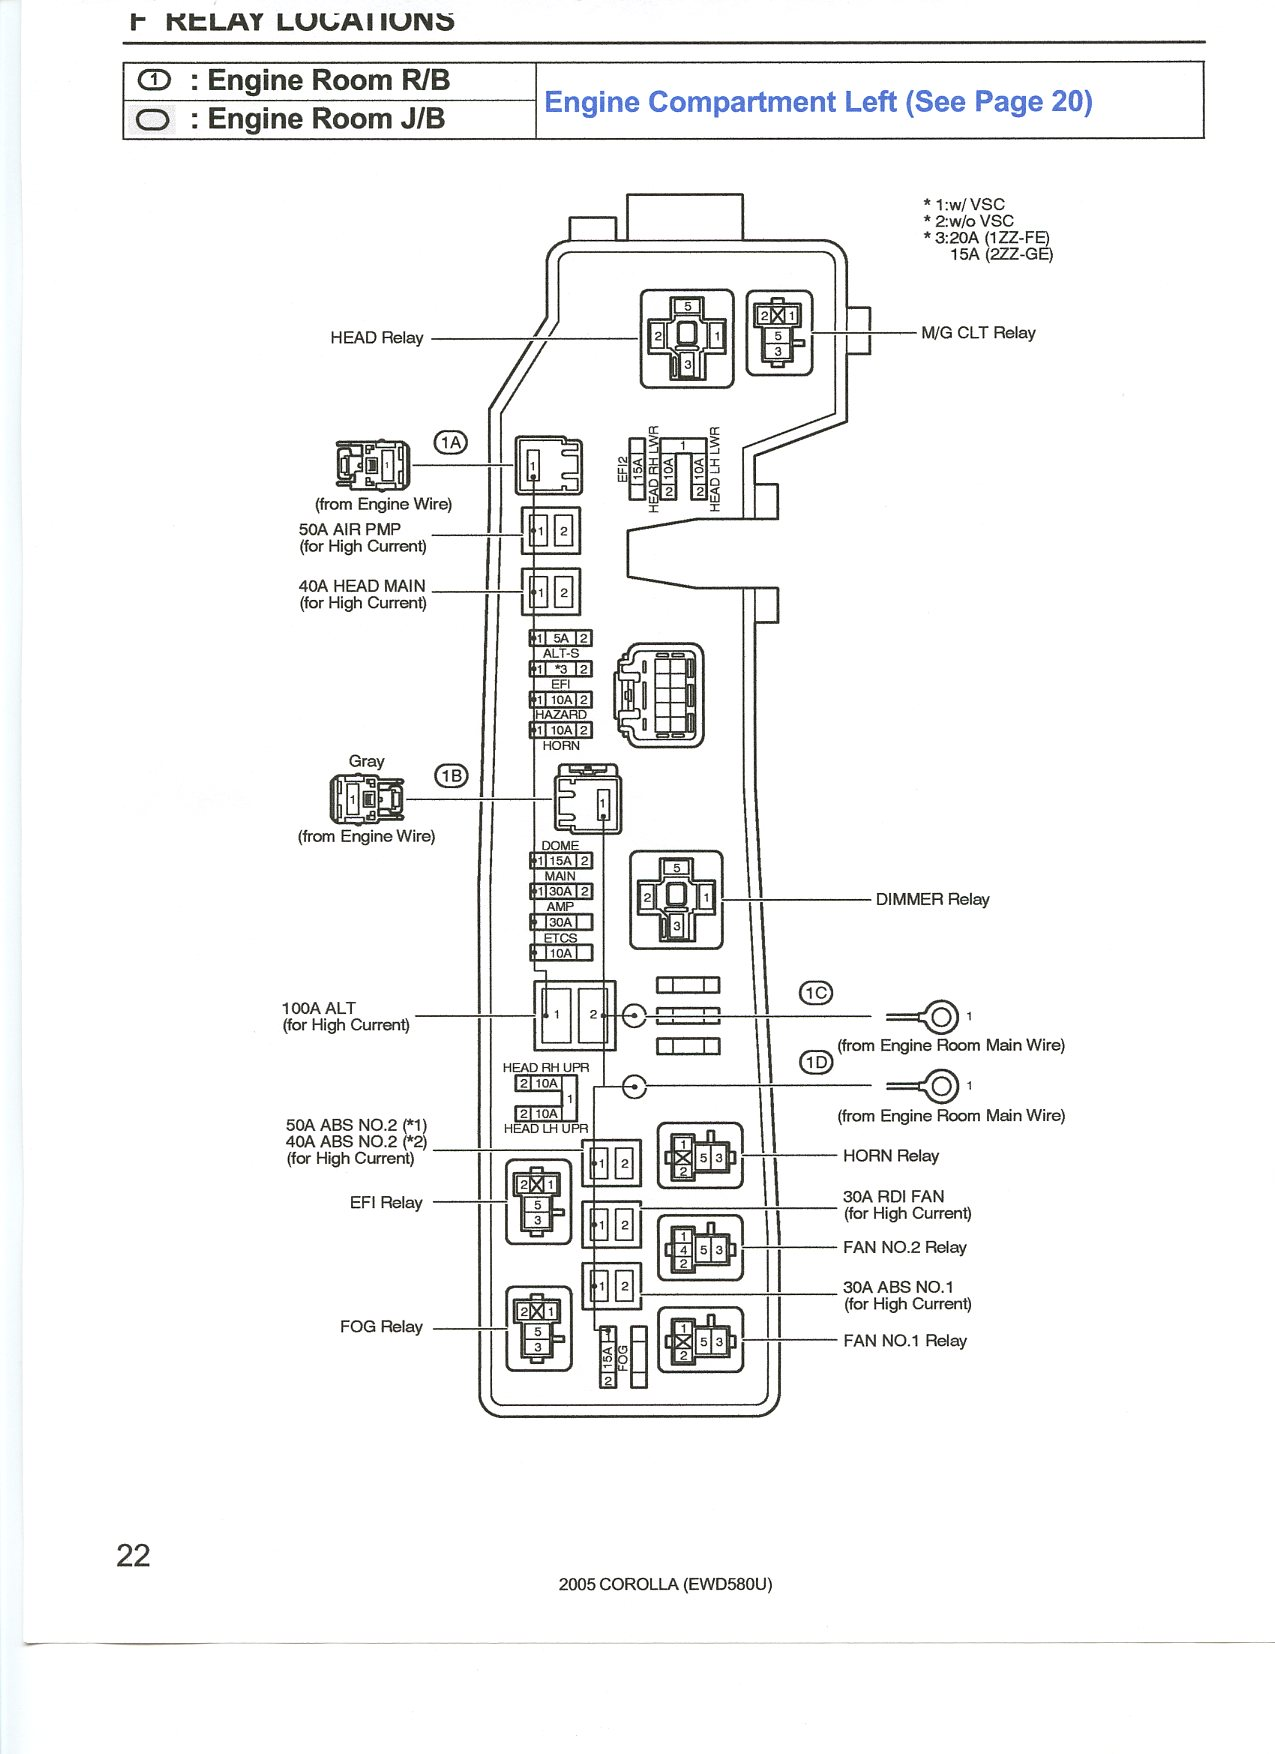 1994 Toyota Corolla Fuse Box Diagram